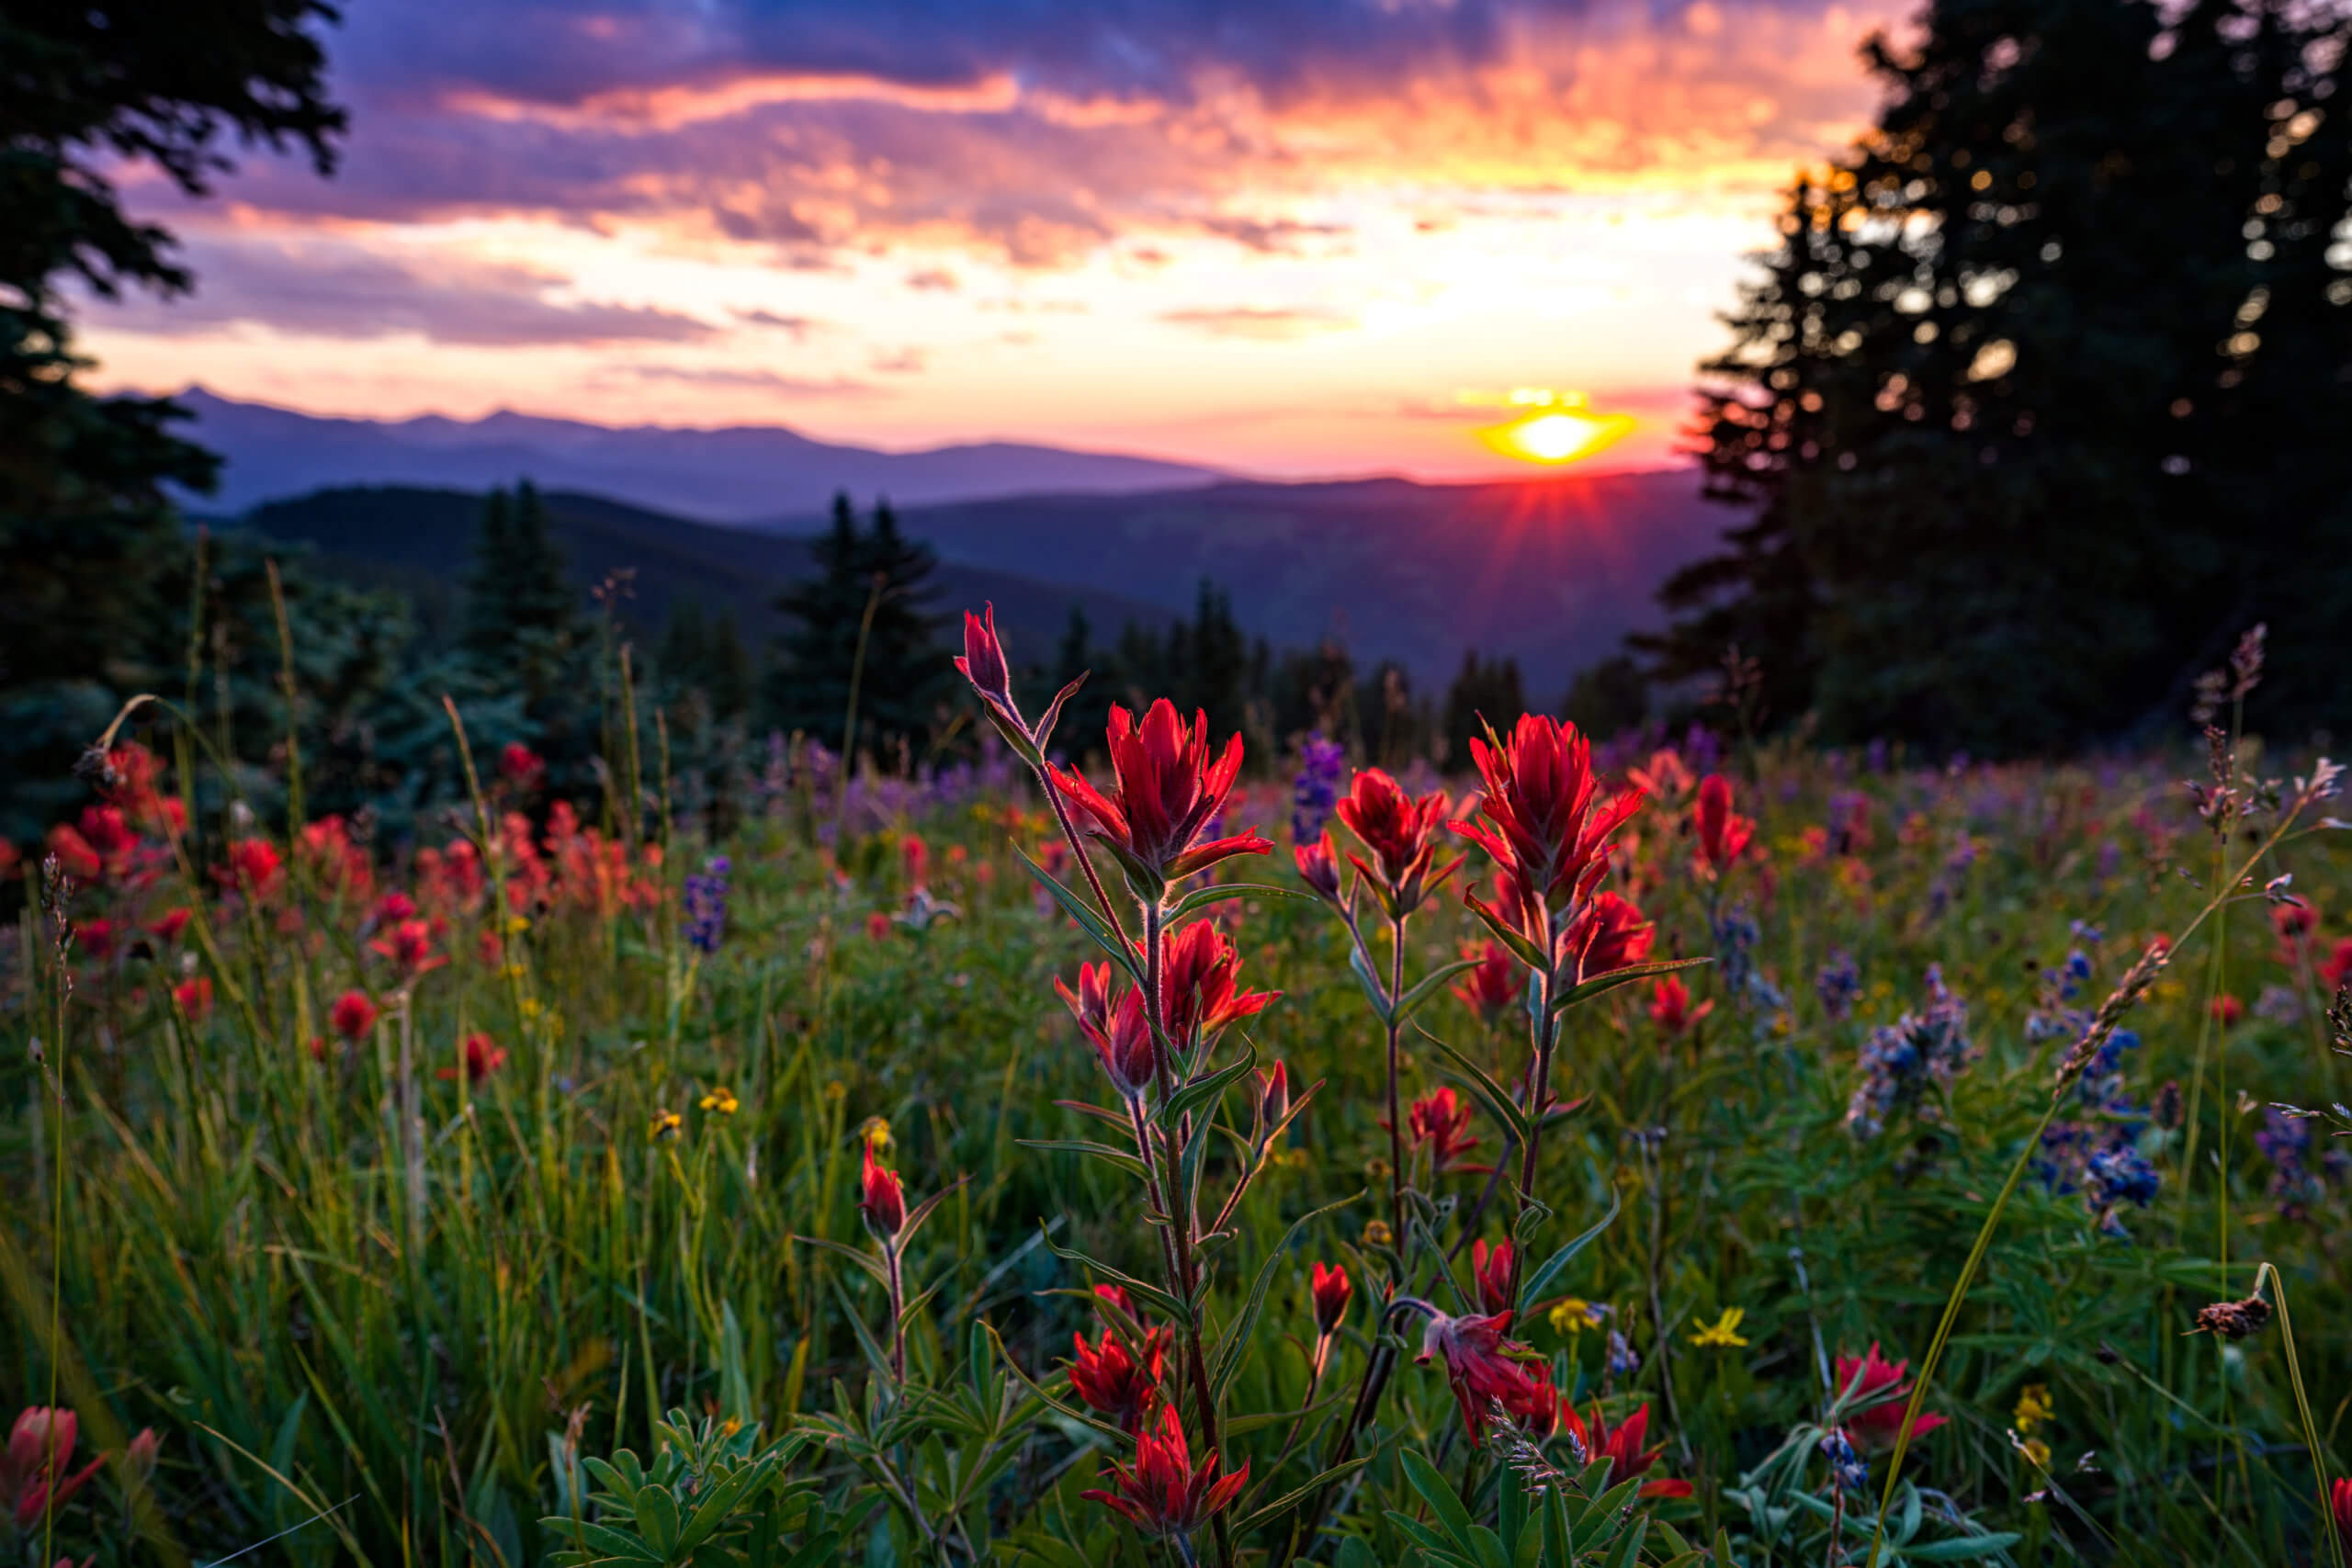 Wildflowers in Mountain Meadow at Sunset